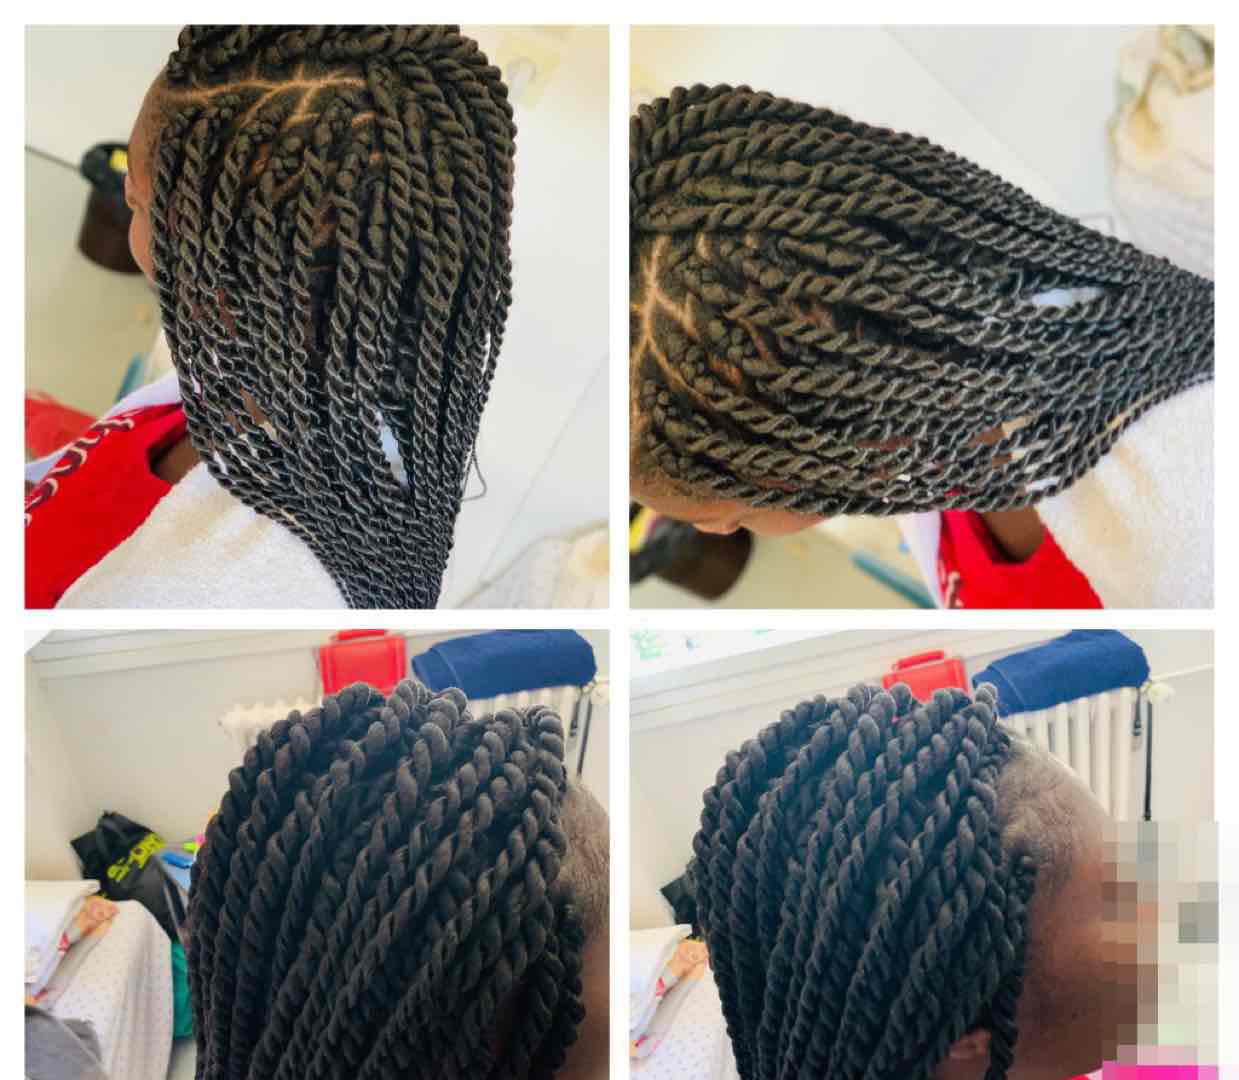 salon de coiffure afro tresse tresses box braids crochet braids vanilles tissages paris 75 77 78 91 92 93 94 95 JNUAOHJR